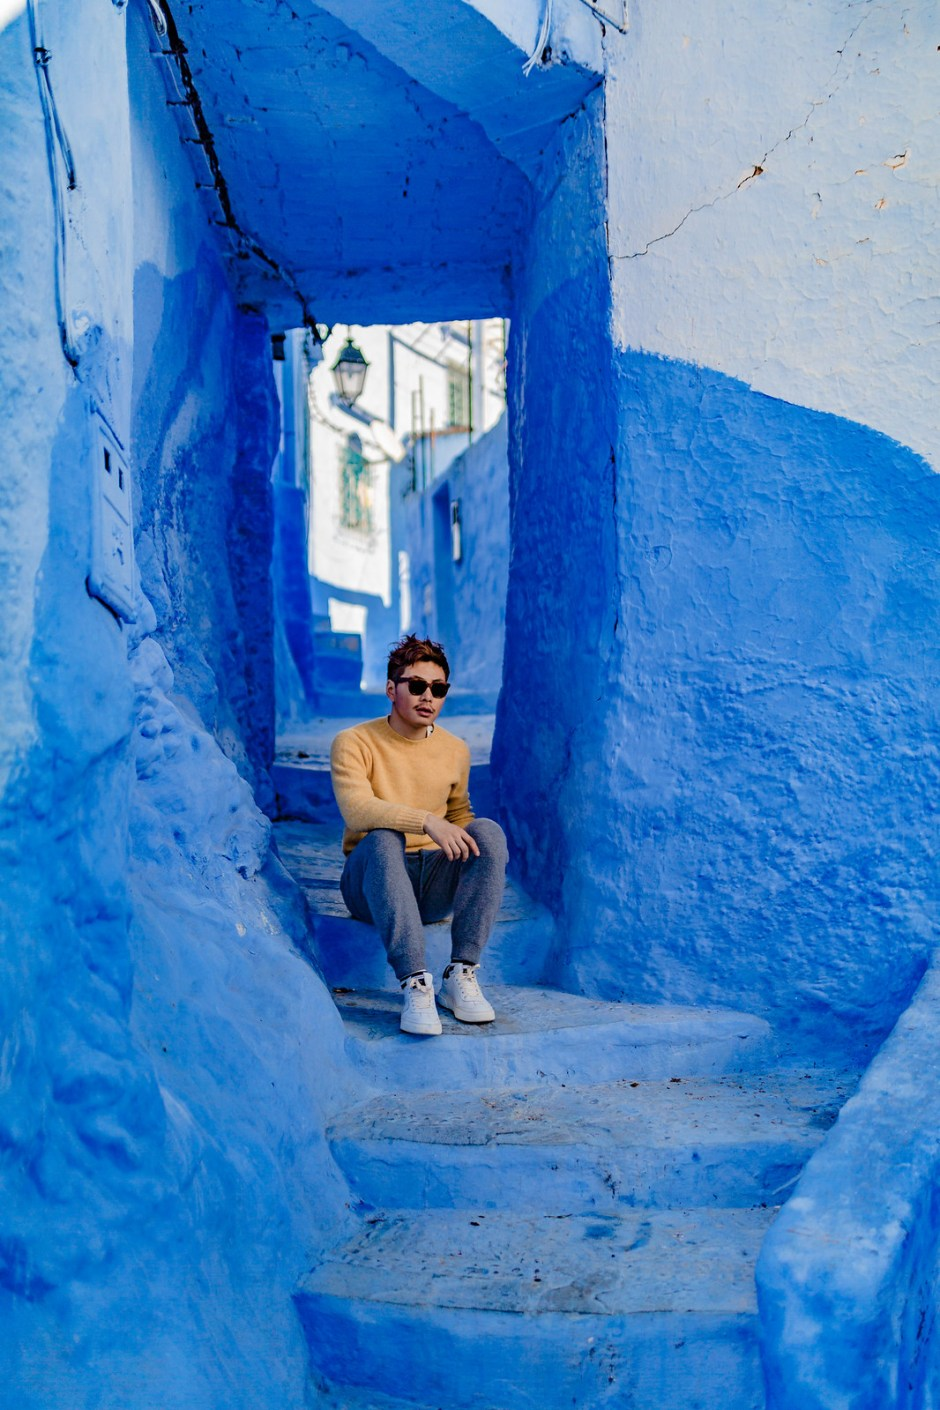 chefchaouen general